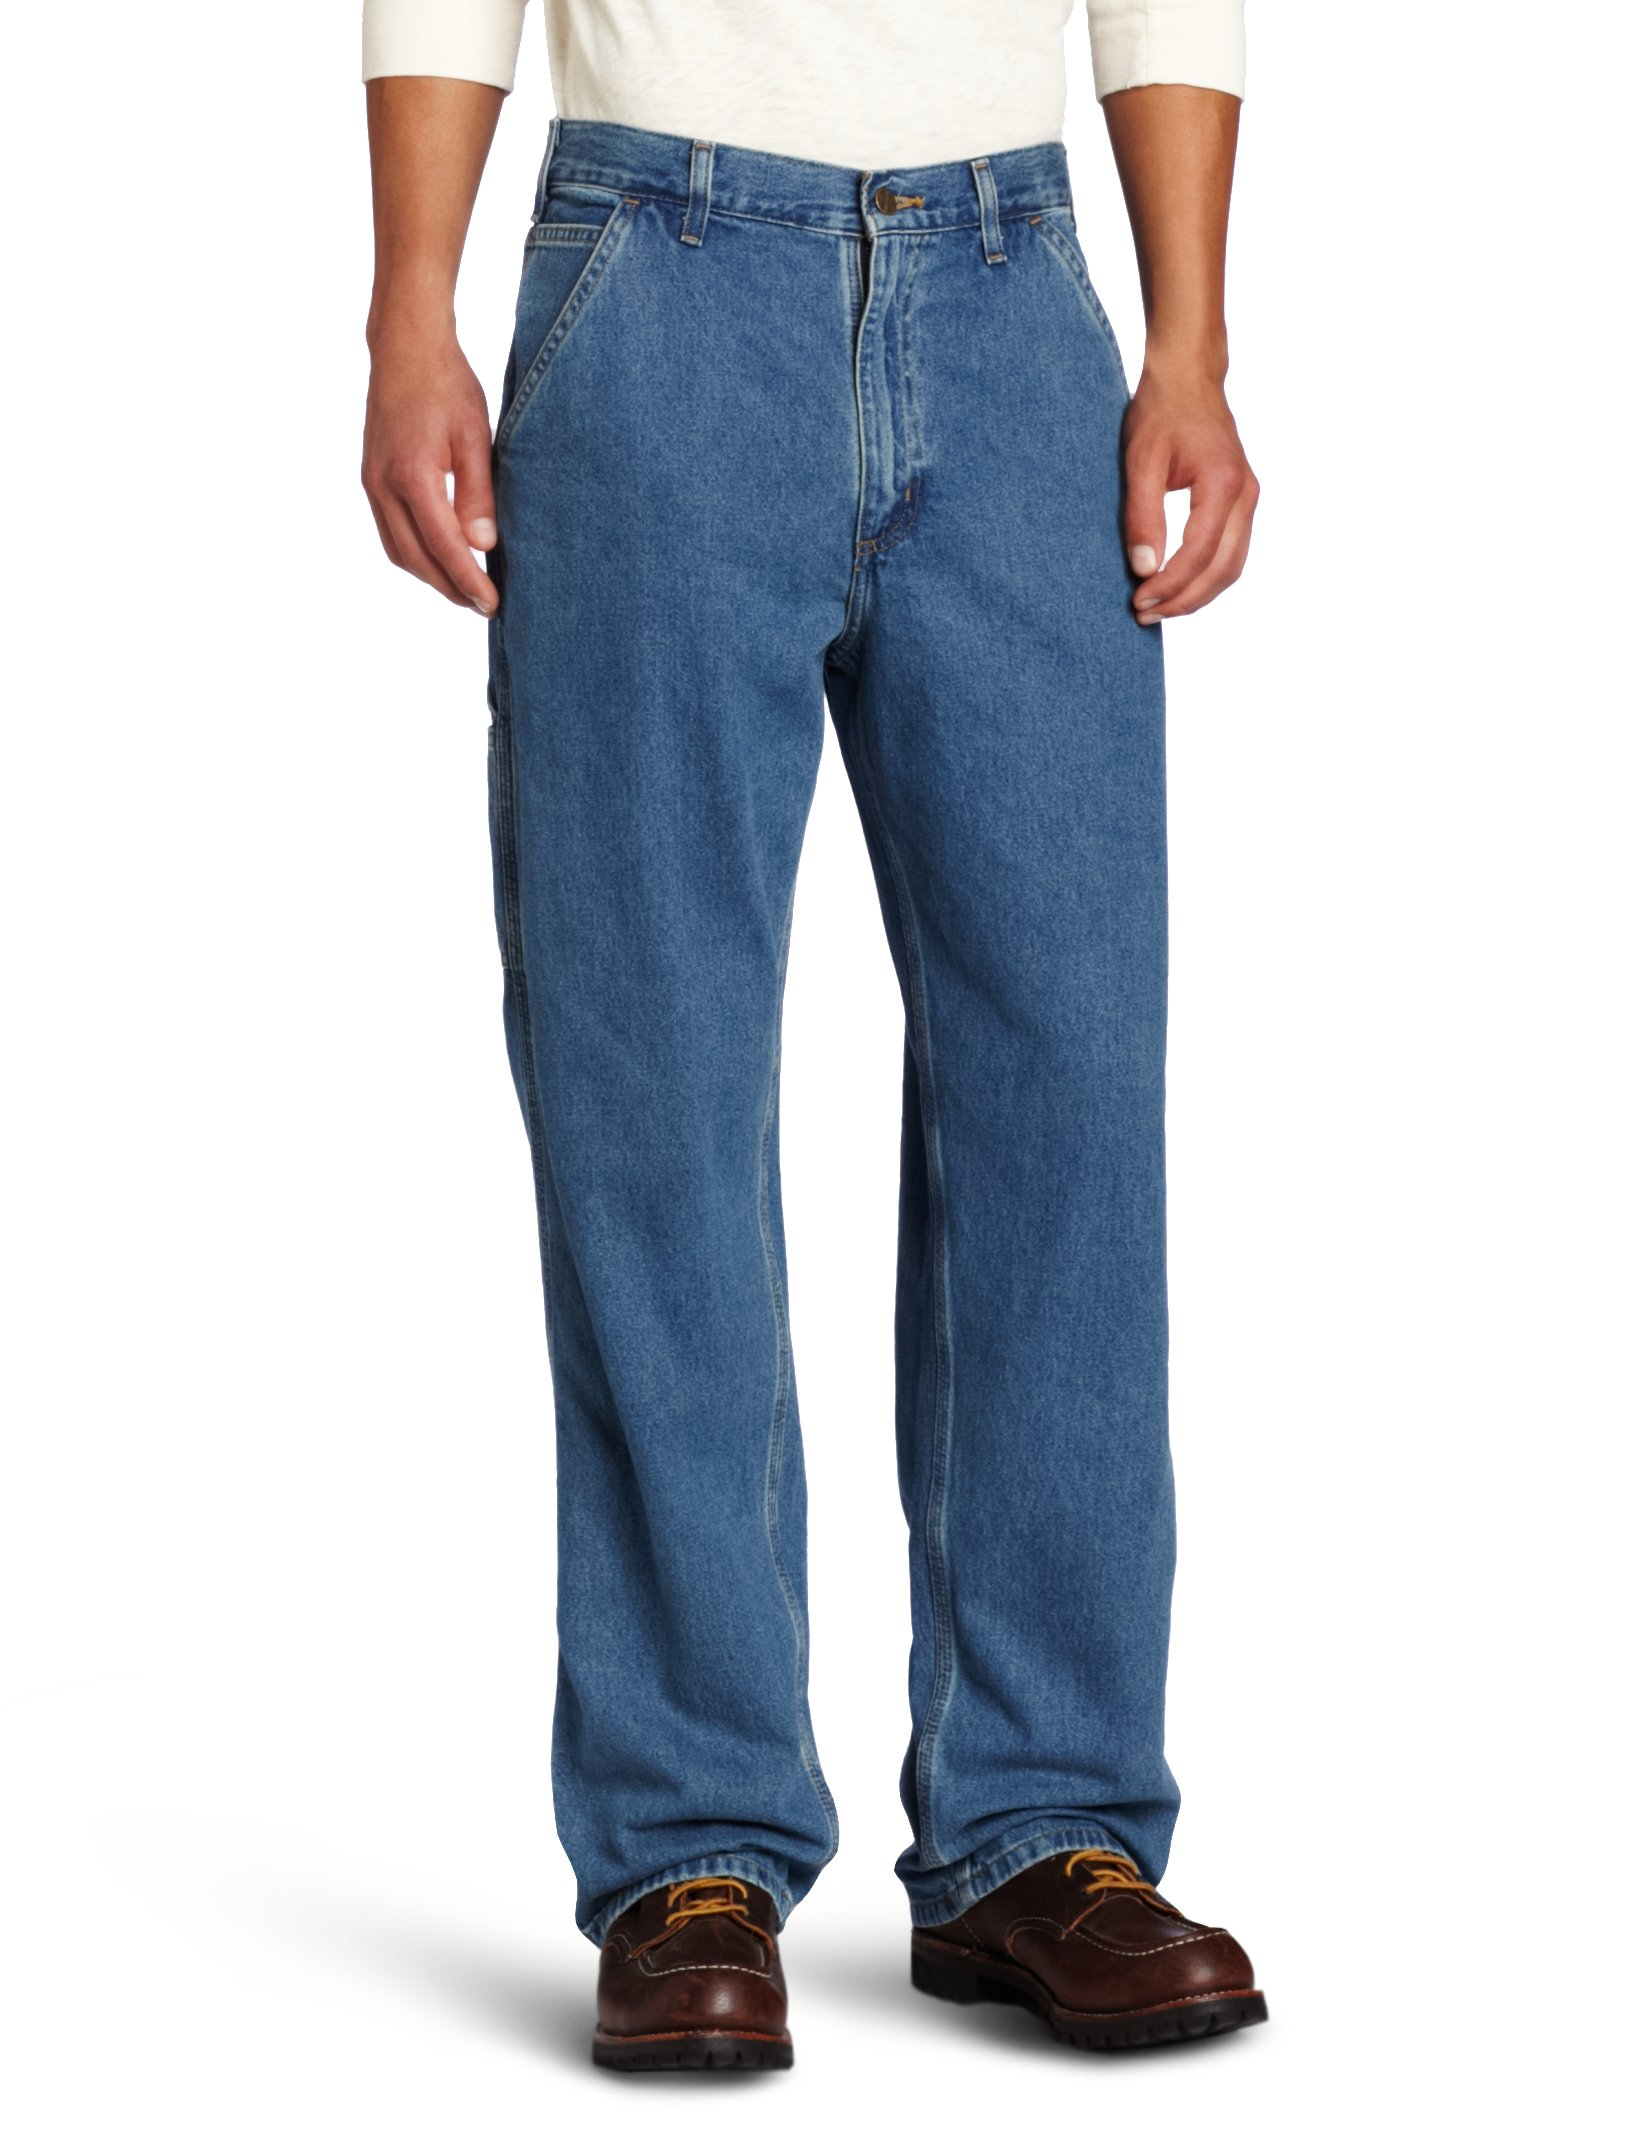 Carhartt Men's Washed Denim Original Fit Work Dungaree B13,Stonewash,44 x 30